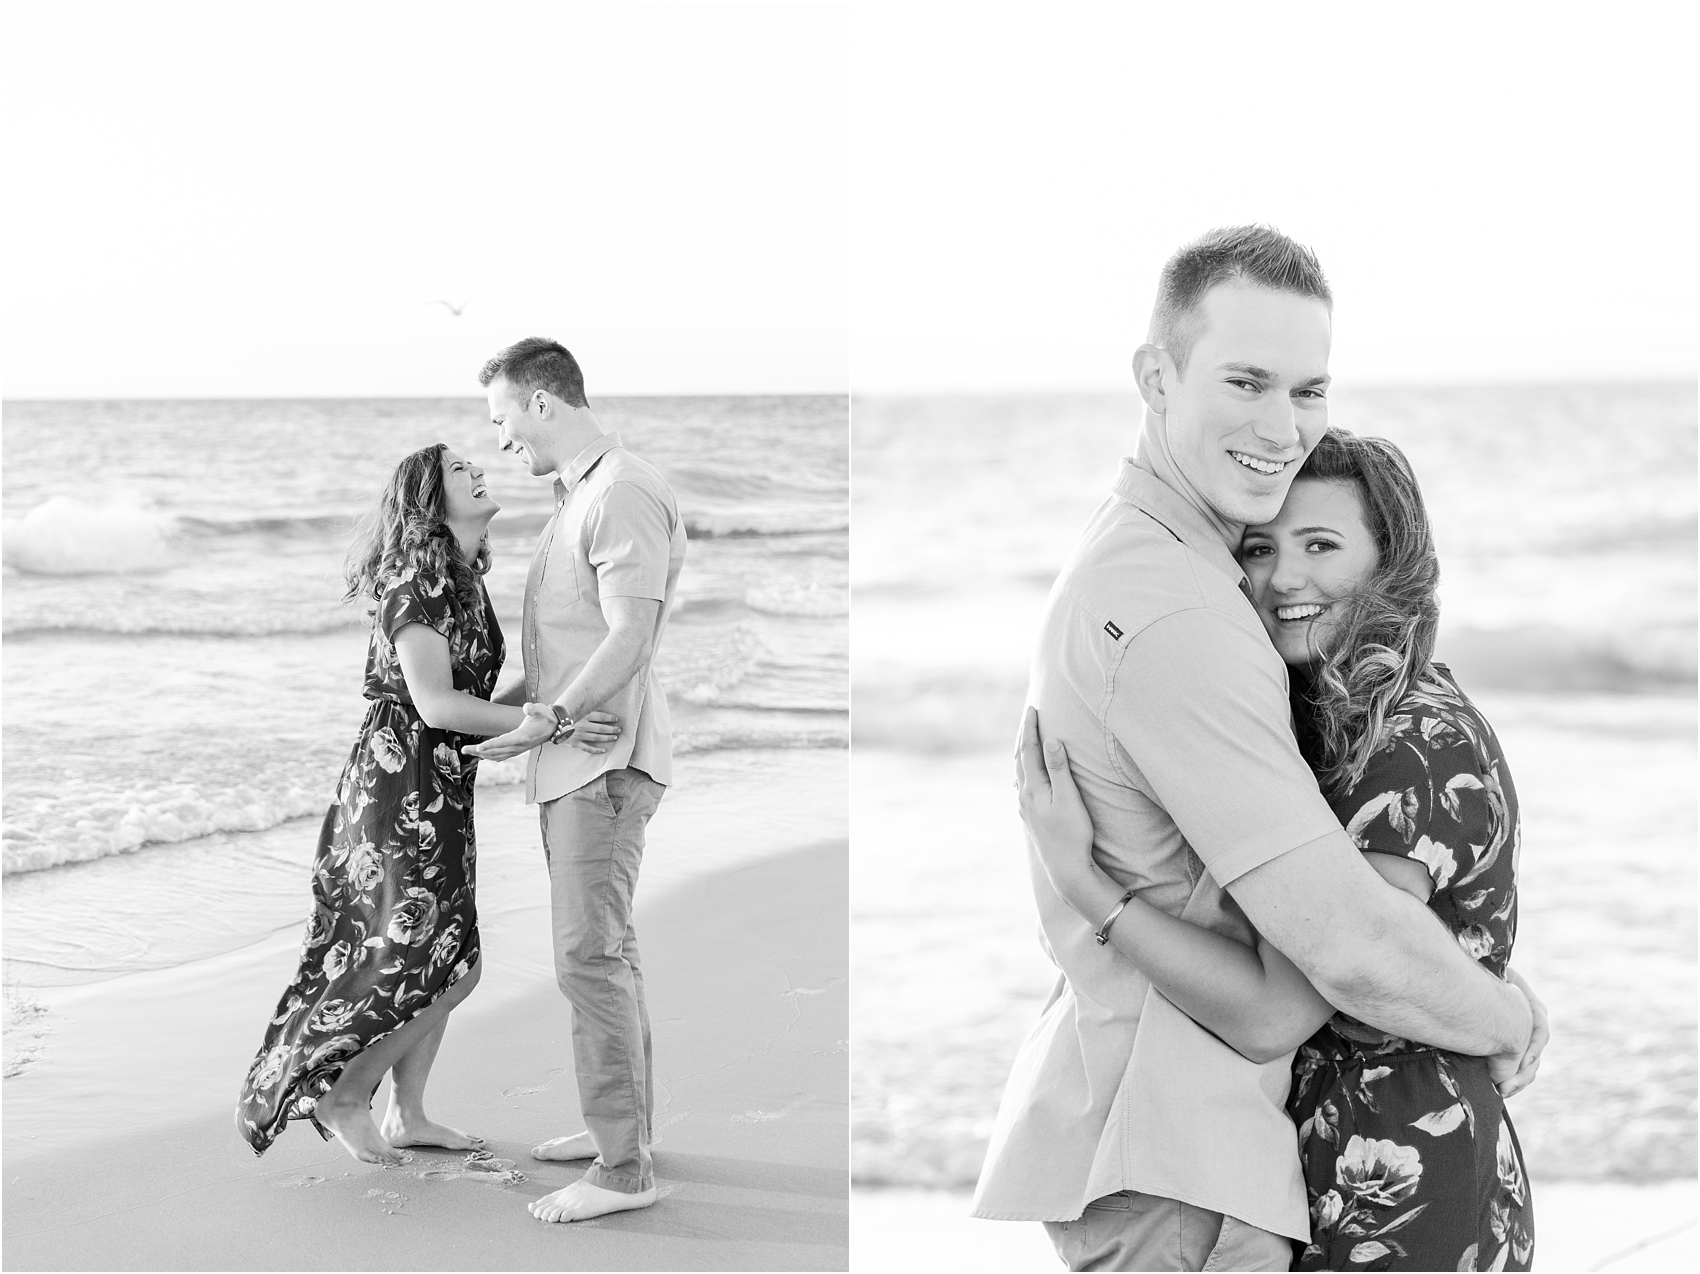 emotional-candid-romantic-engagement-photos-in-detroit-chicago-northern-michigan-by-courtney-carolyn-photography_0037.jpg